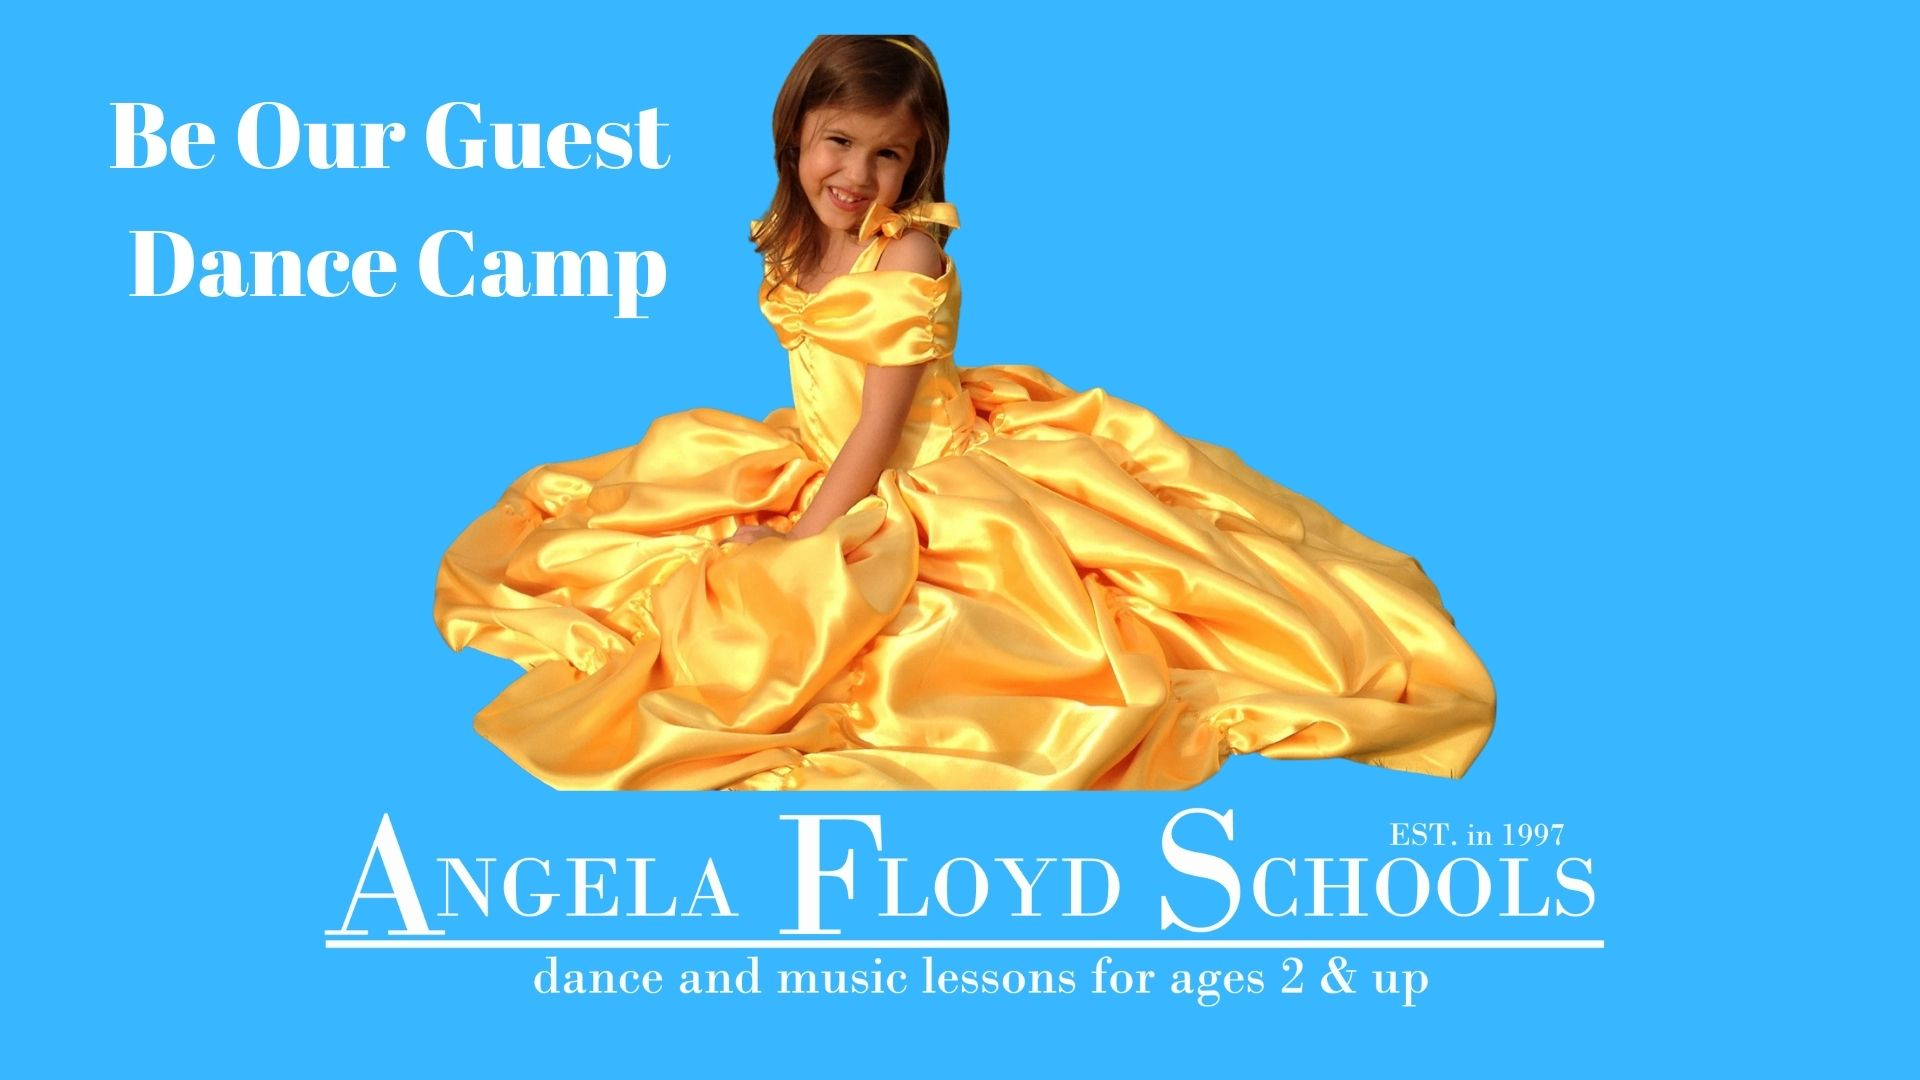 Be Our Guest Dance Camp